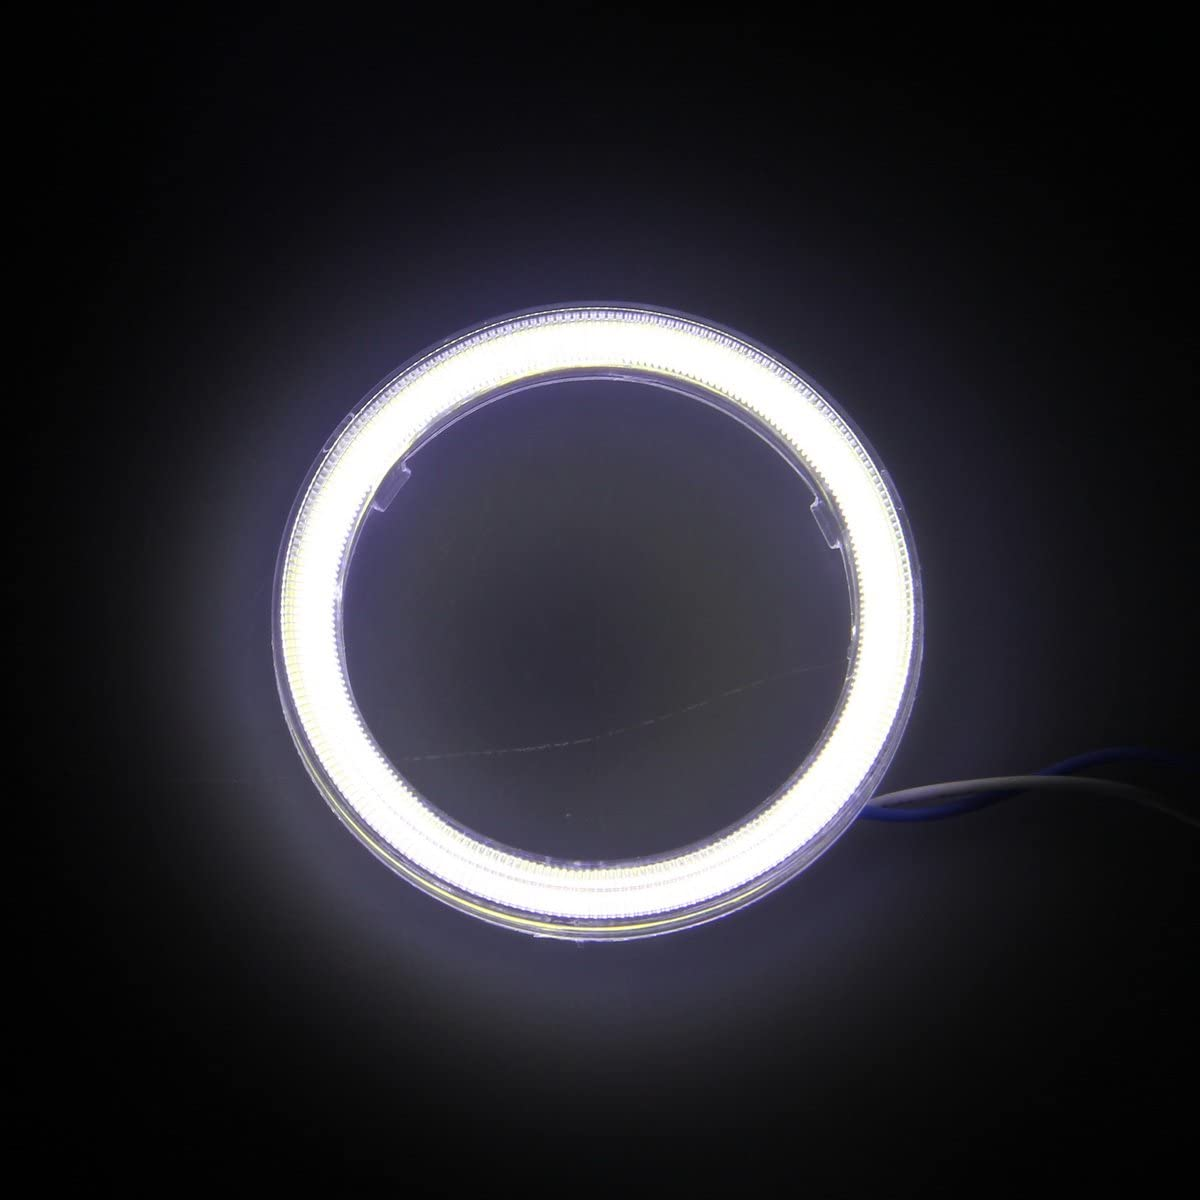 Possbay 60mm Car Angel Eyes Light Headlight LED Halo Ring Lamp 66 SMD Chip with Cover